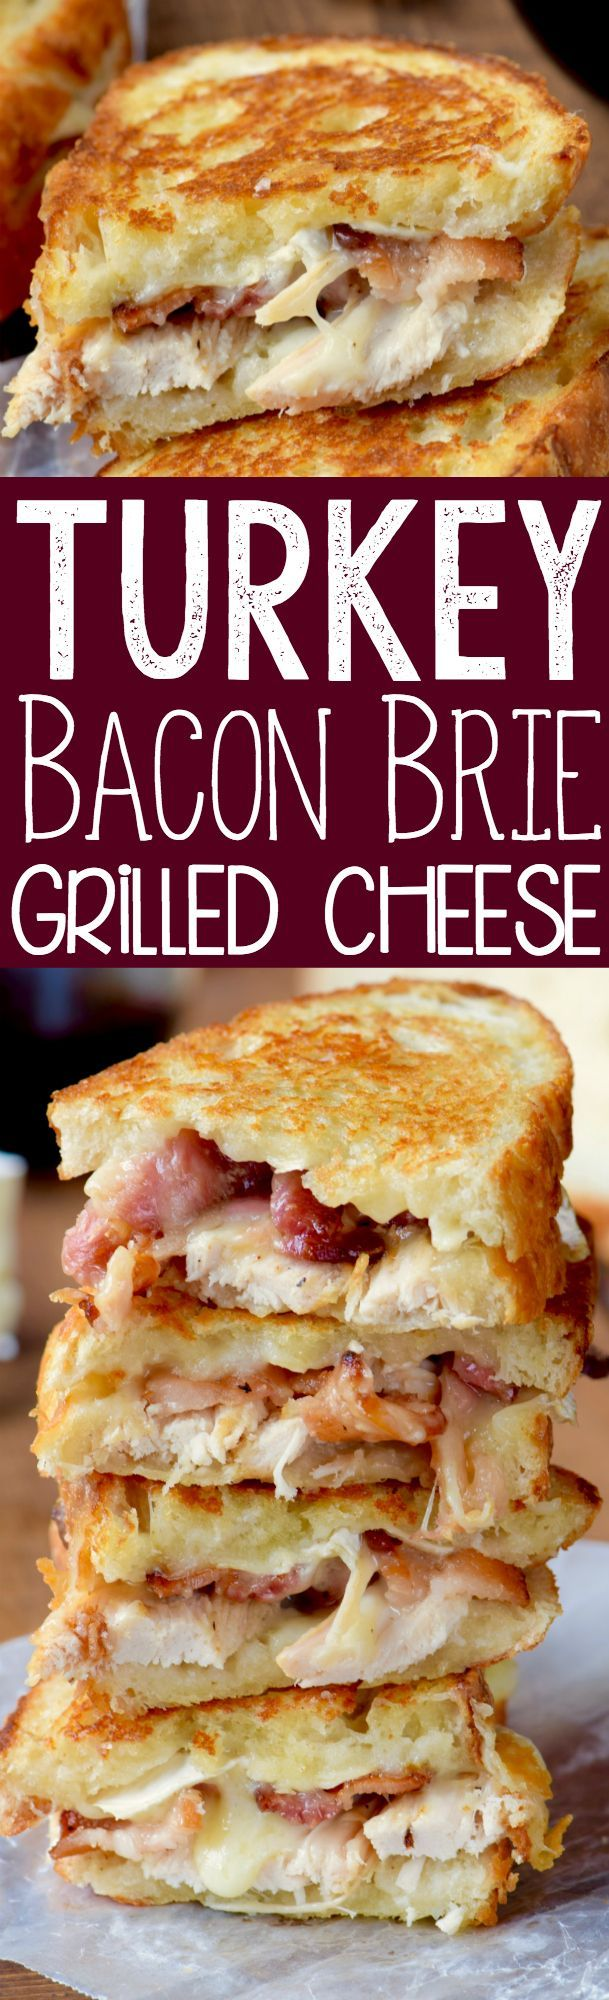 White apron jimmy john's april fools